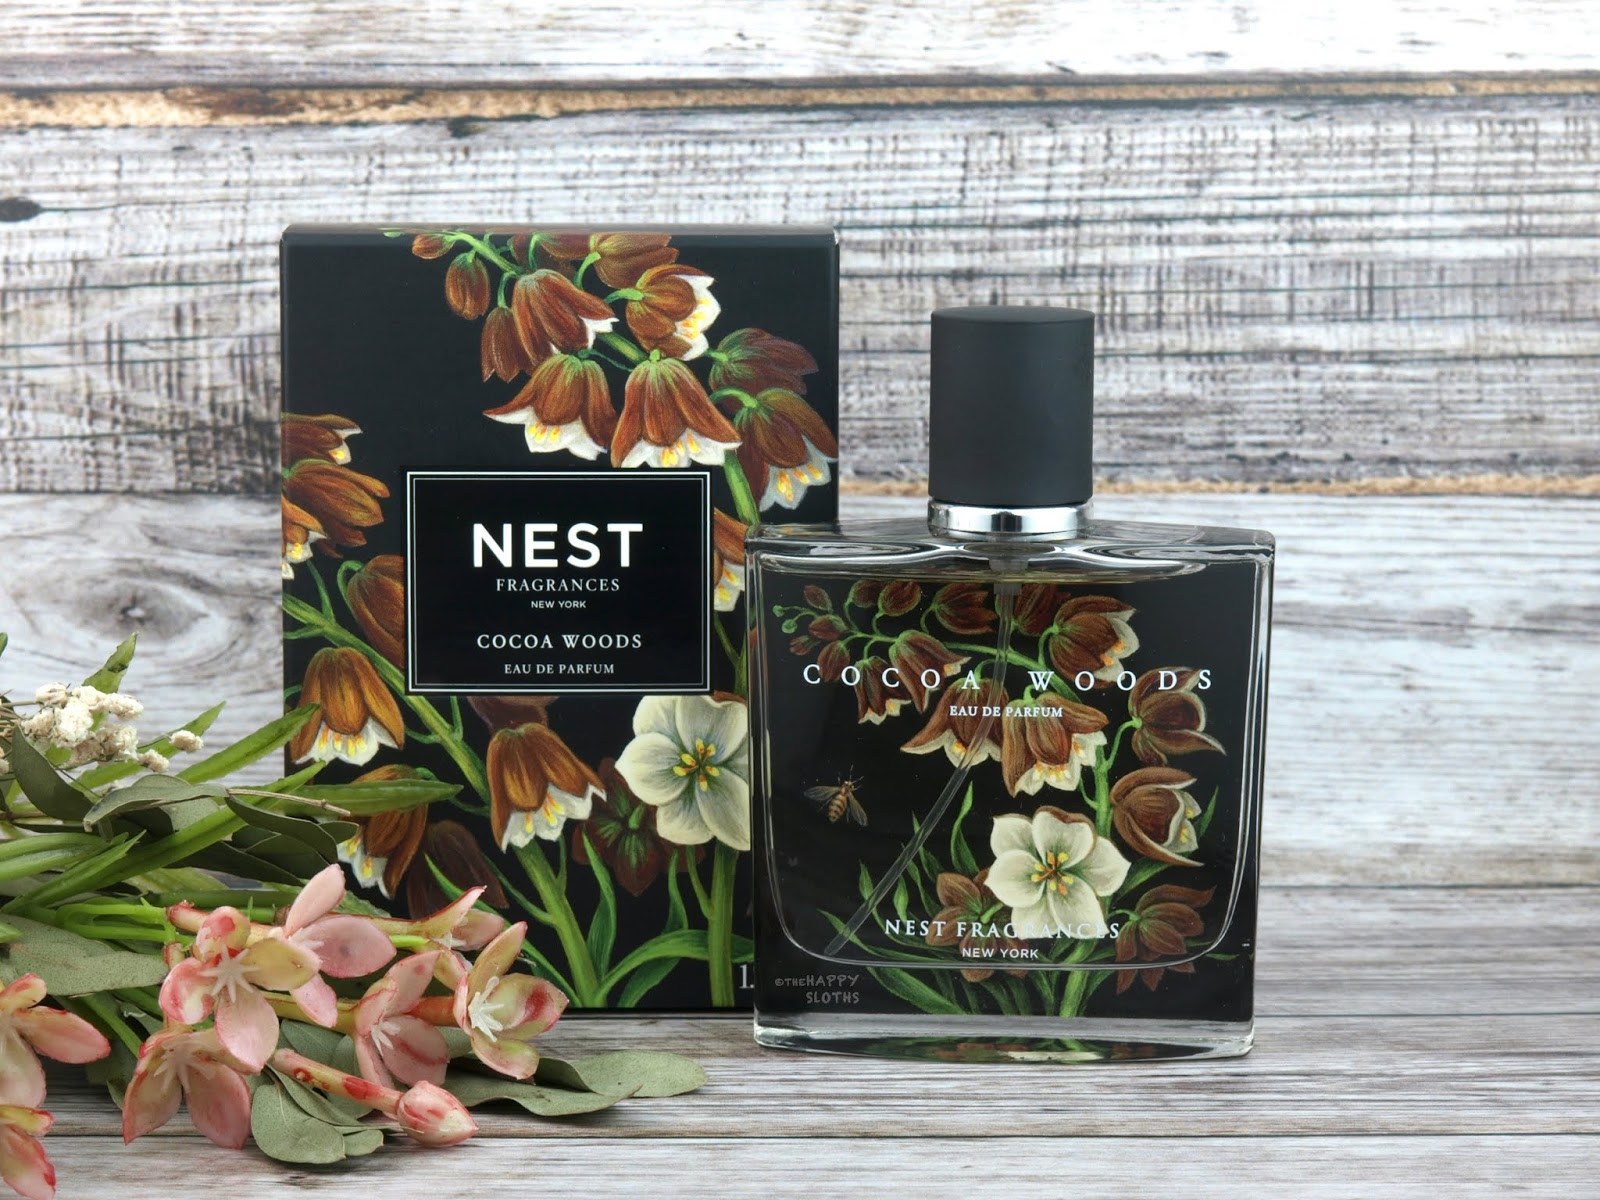 NEST Fragrances | Cocoa Woods Eau de Parfum: Review